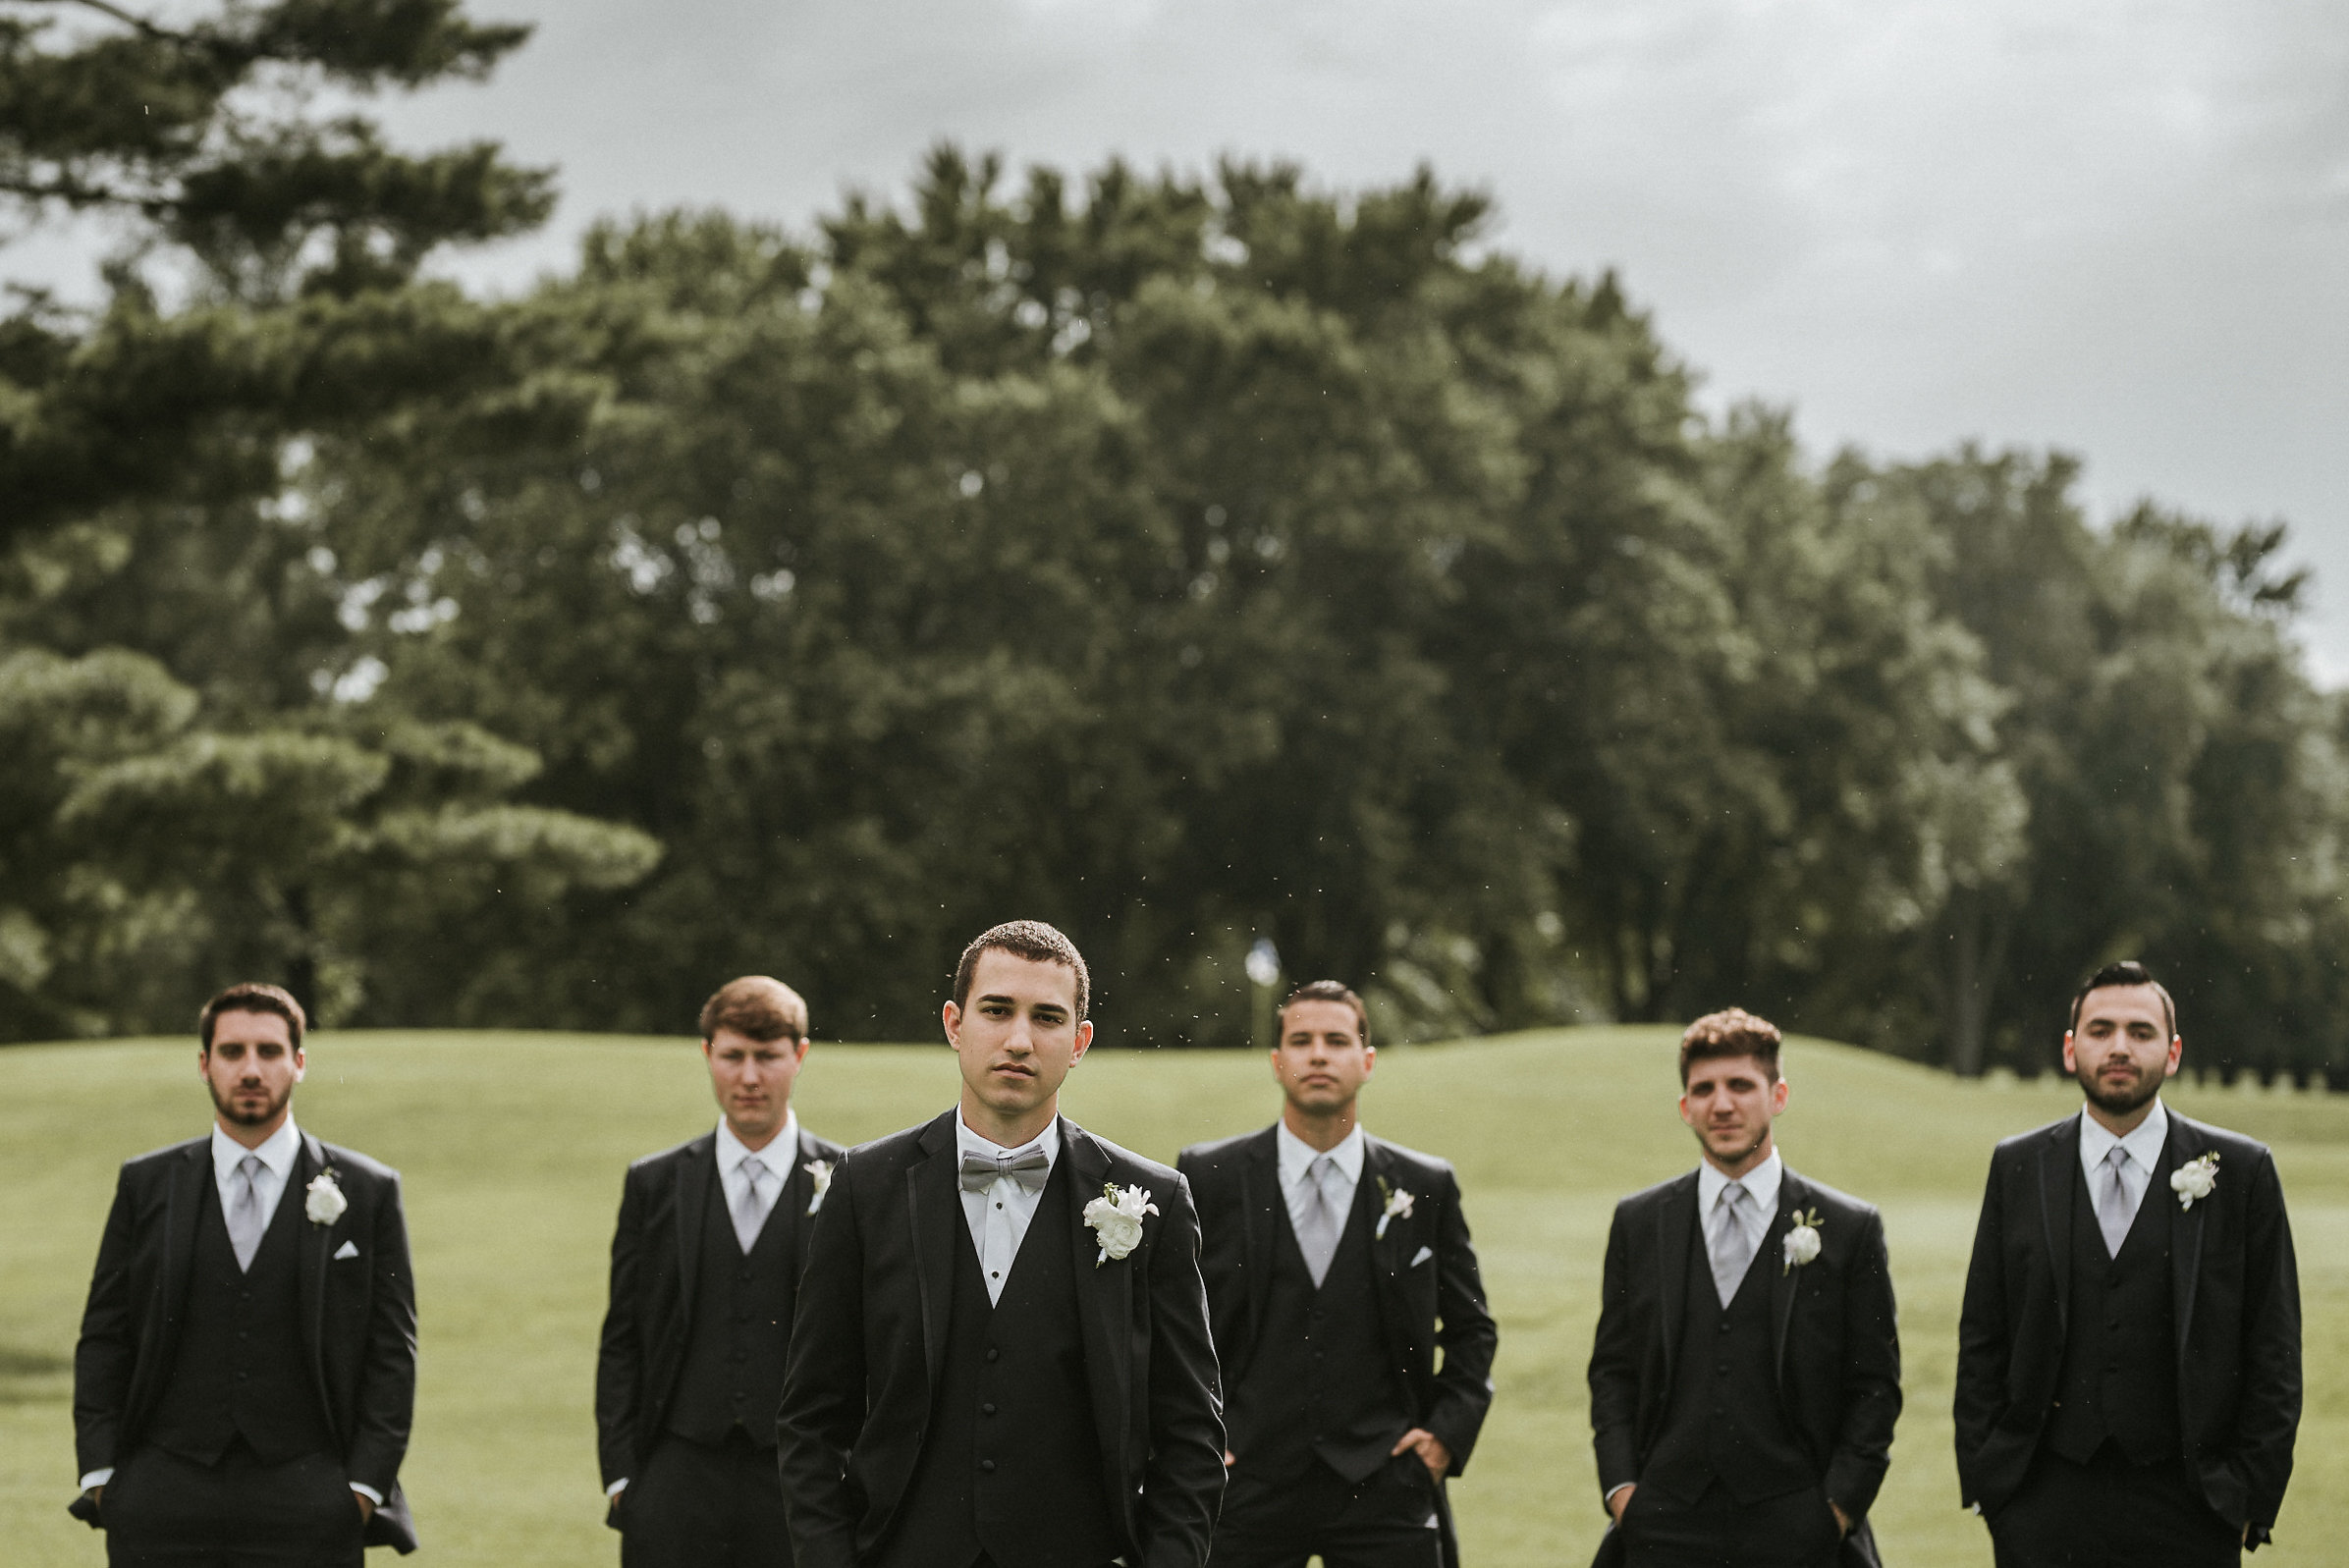 Groom and groomsmen on golf course